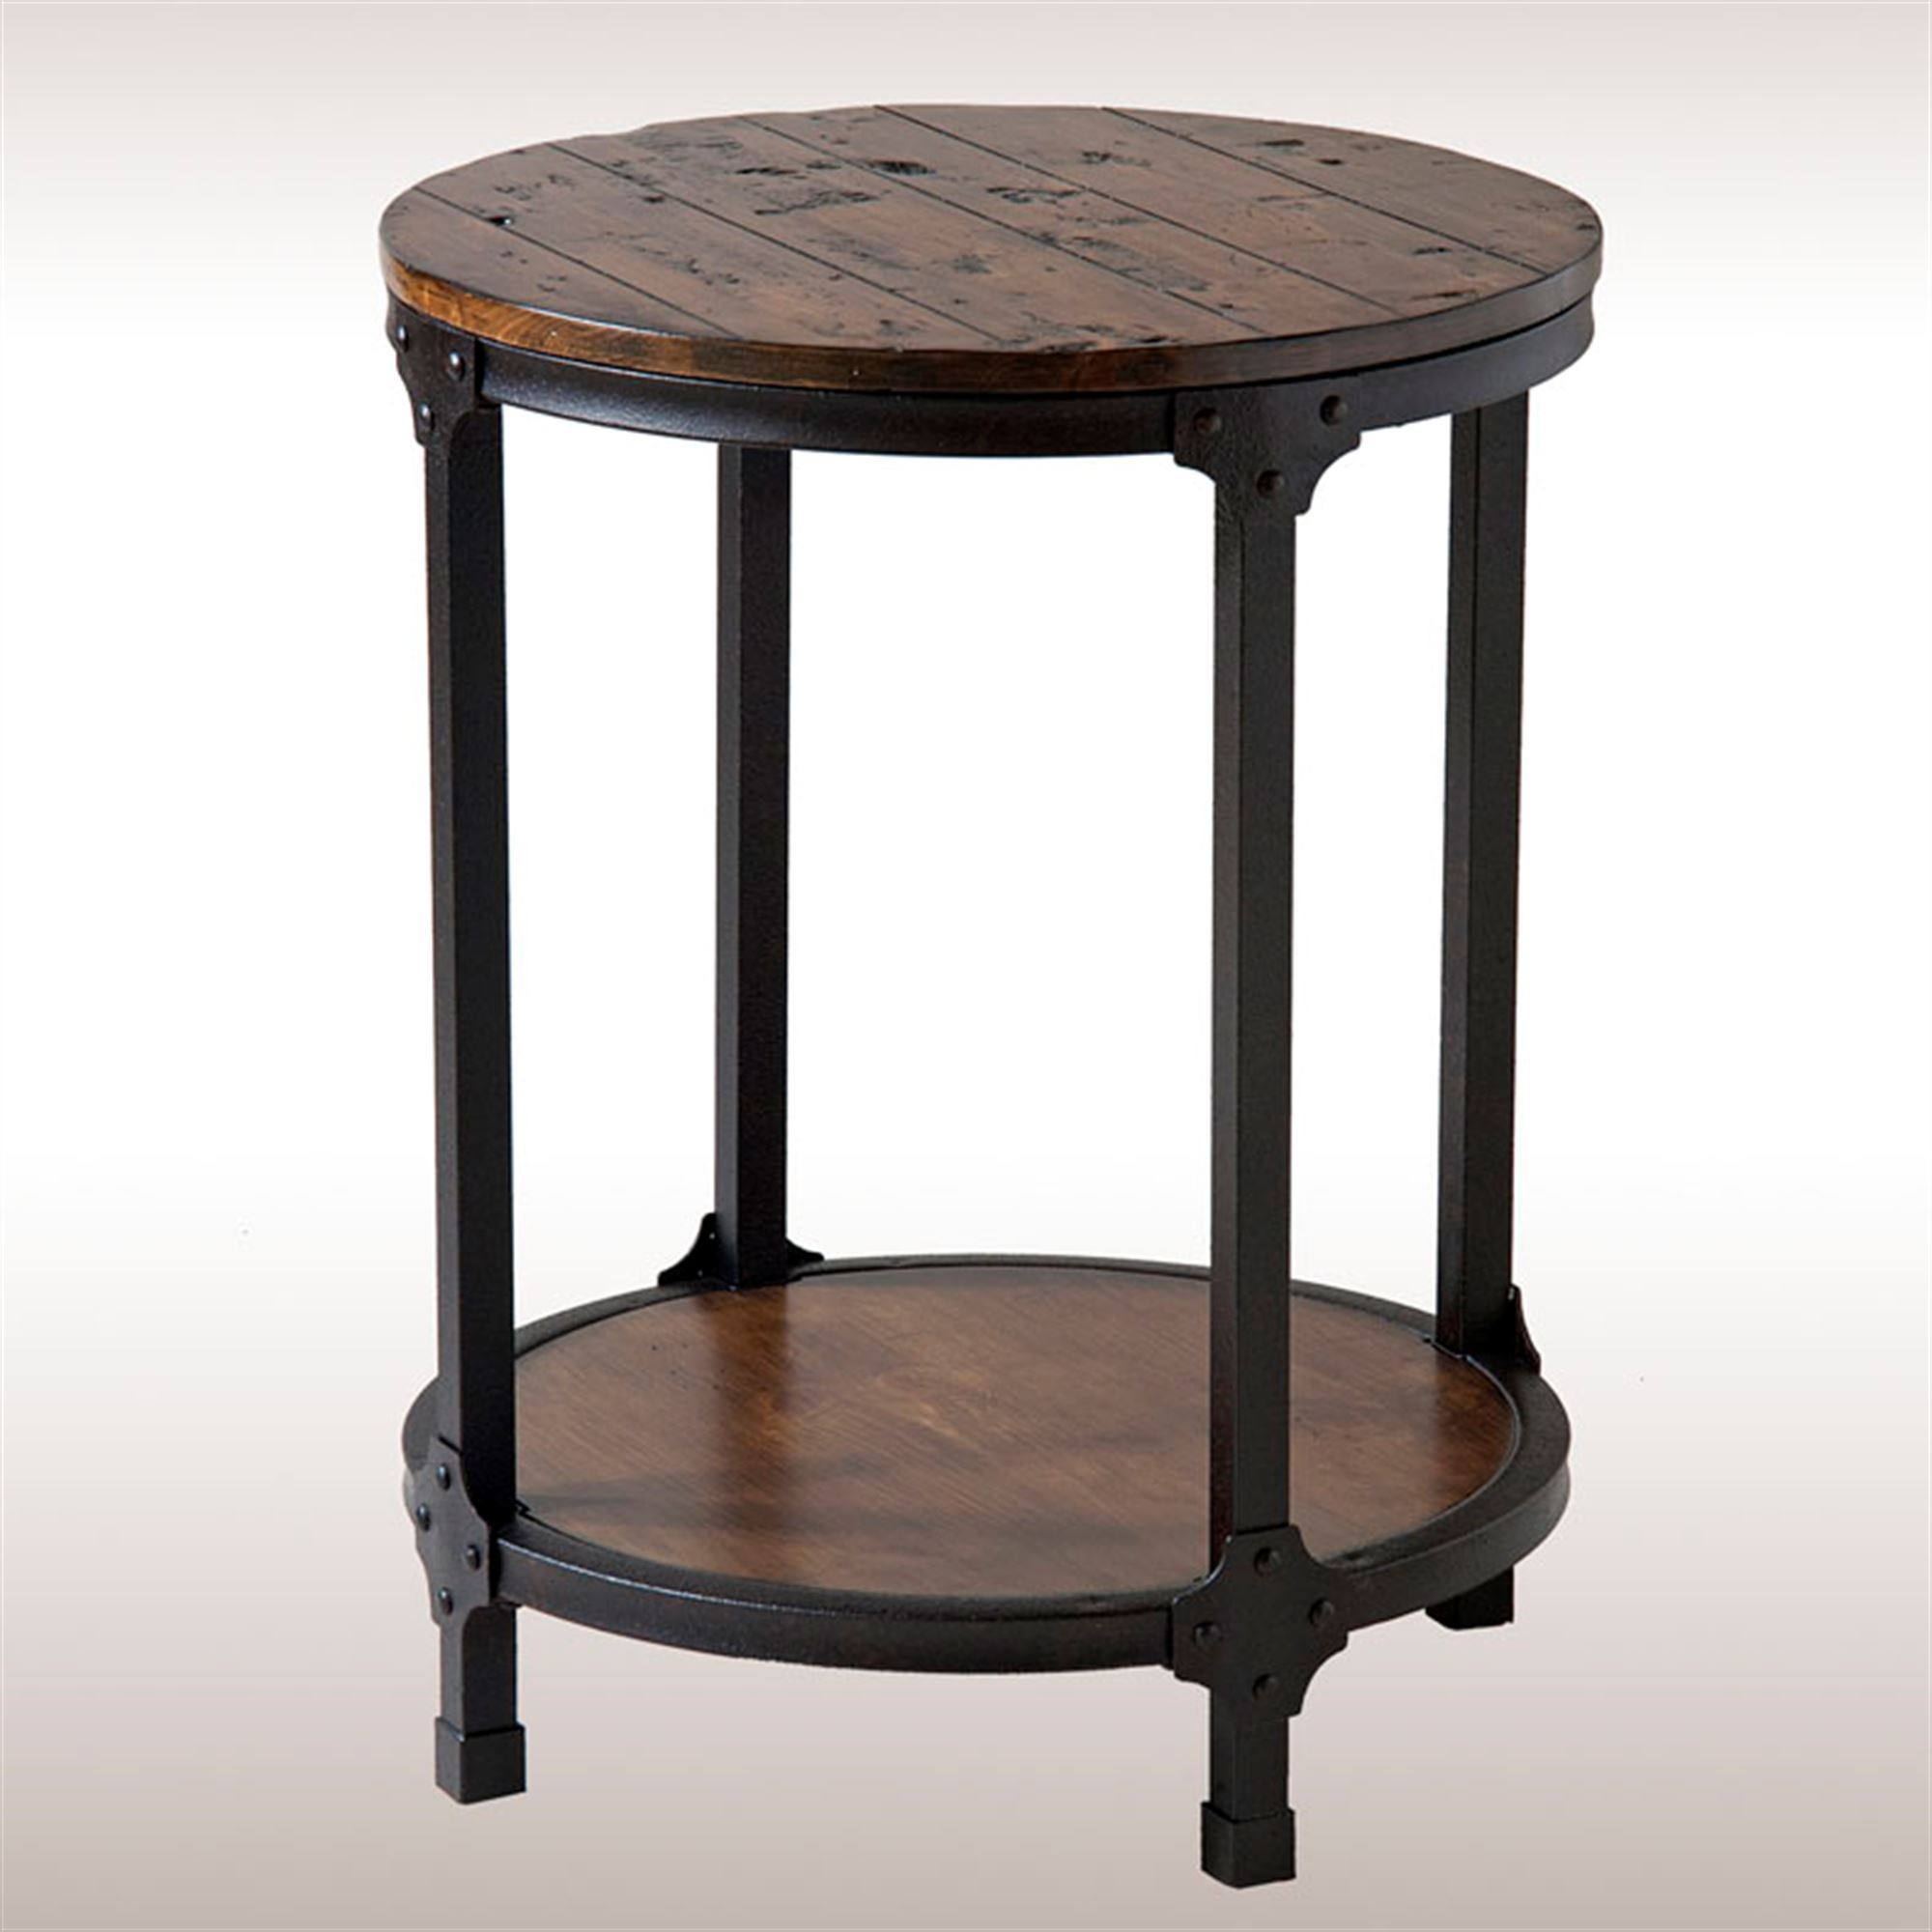 macon rustic round accent table end tables aged brown touch zoom small nightstands for bedroom mirrored bedside units inch deep chest drawers oak mission with tablecloth fitted